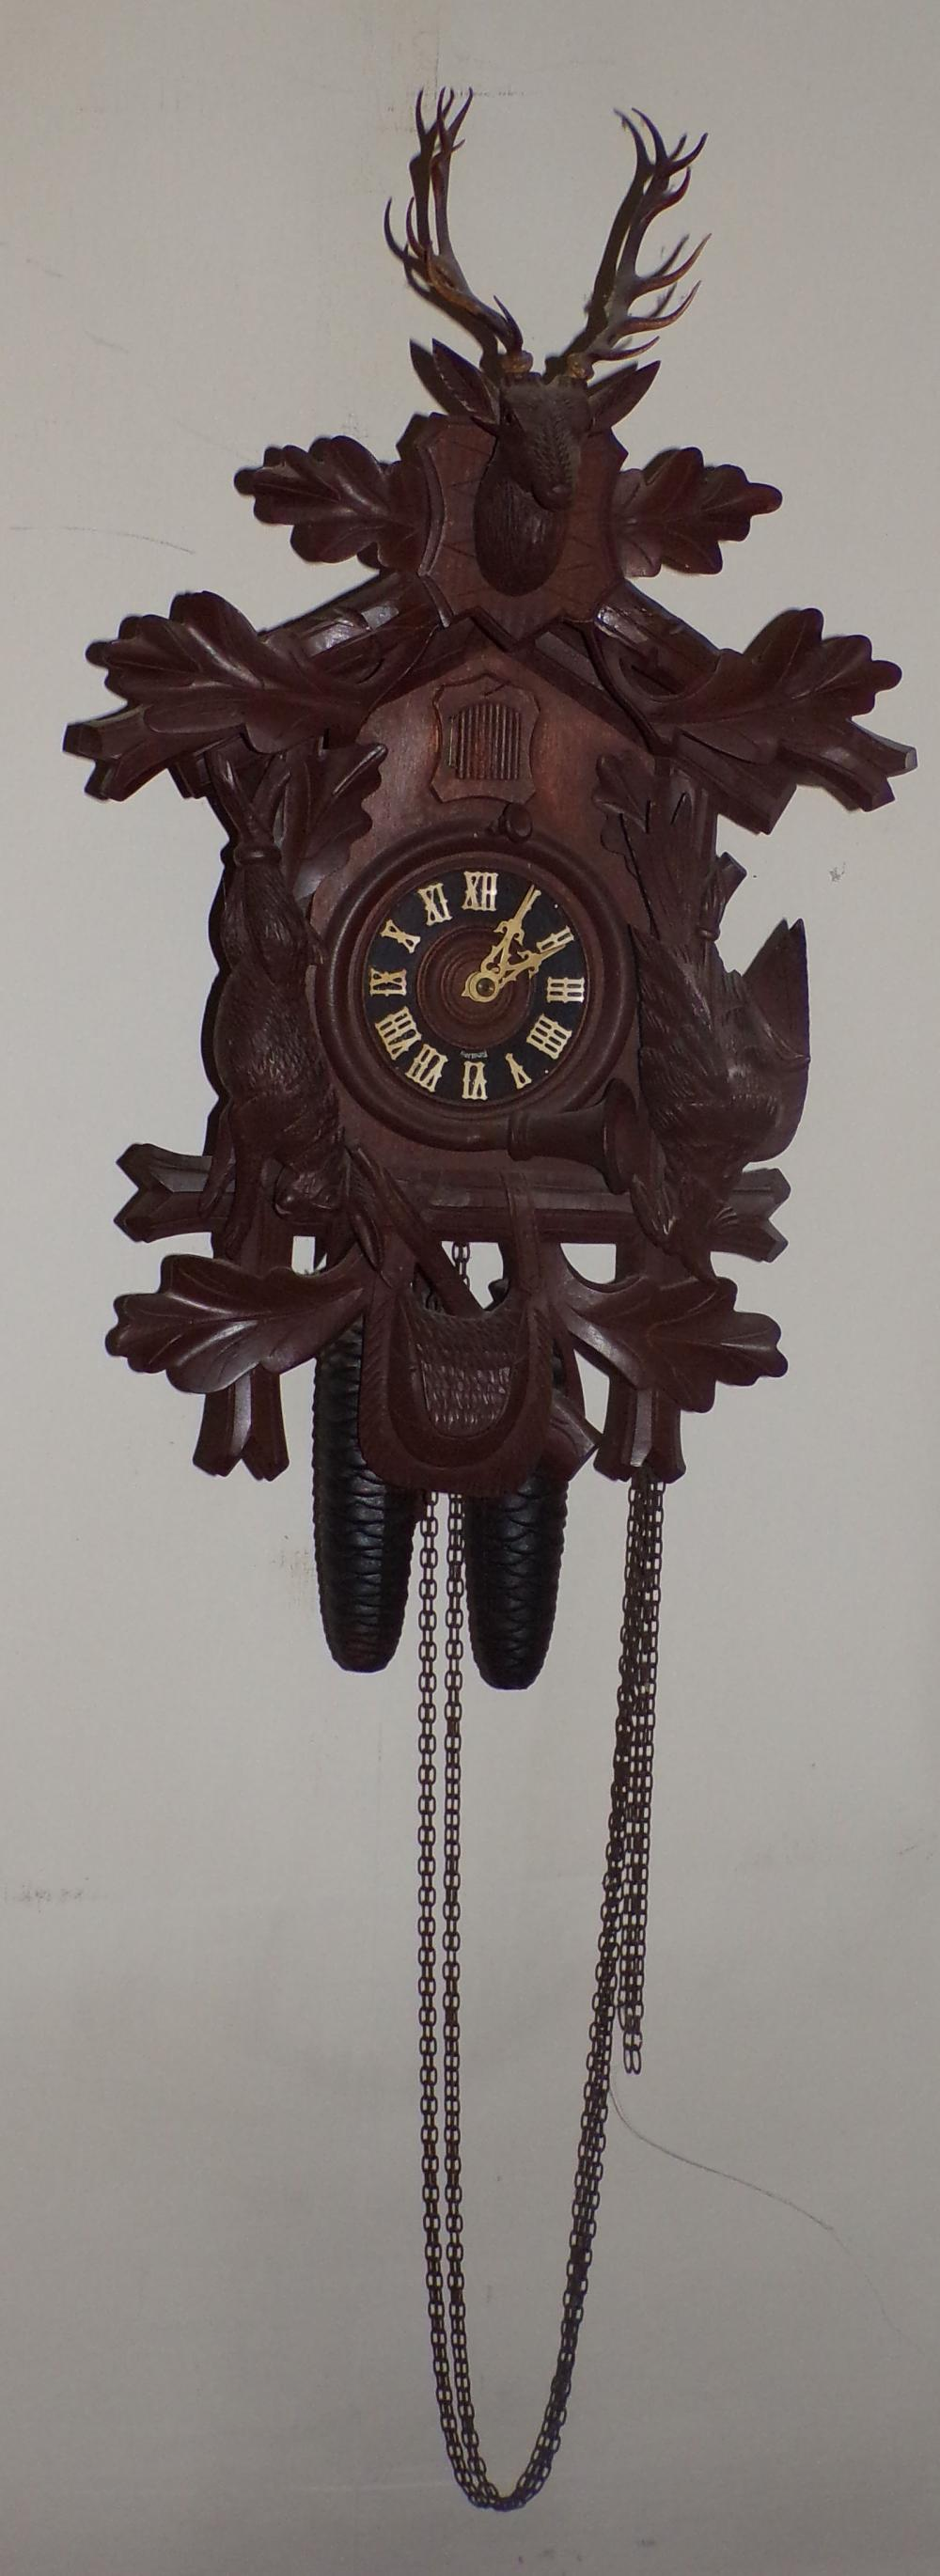 "Cuckoo clock marked Germany with buck, rabbit and bird carvings, horn gun & saddle bag carving at base,  pineapple form weights & leaf form pendulum, approx. 22 ¾"" T x 14"" w x 10 ¾"" D"